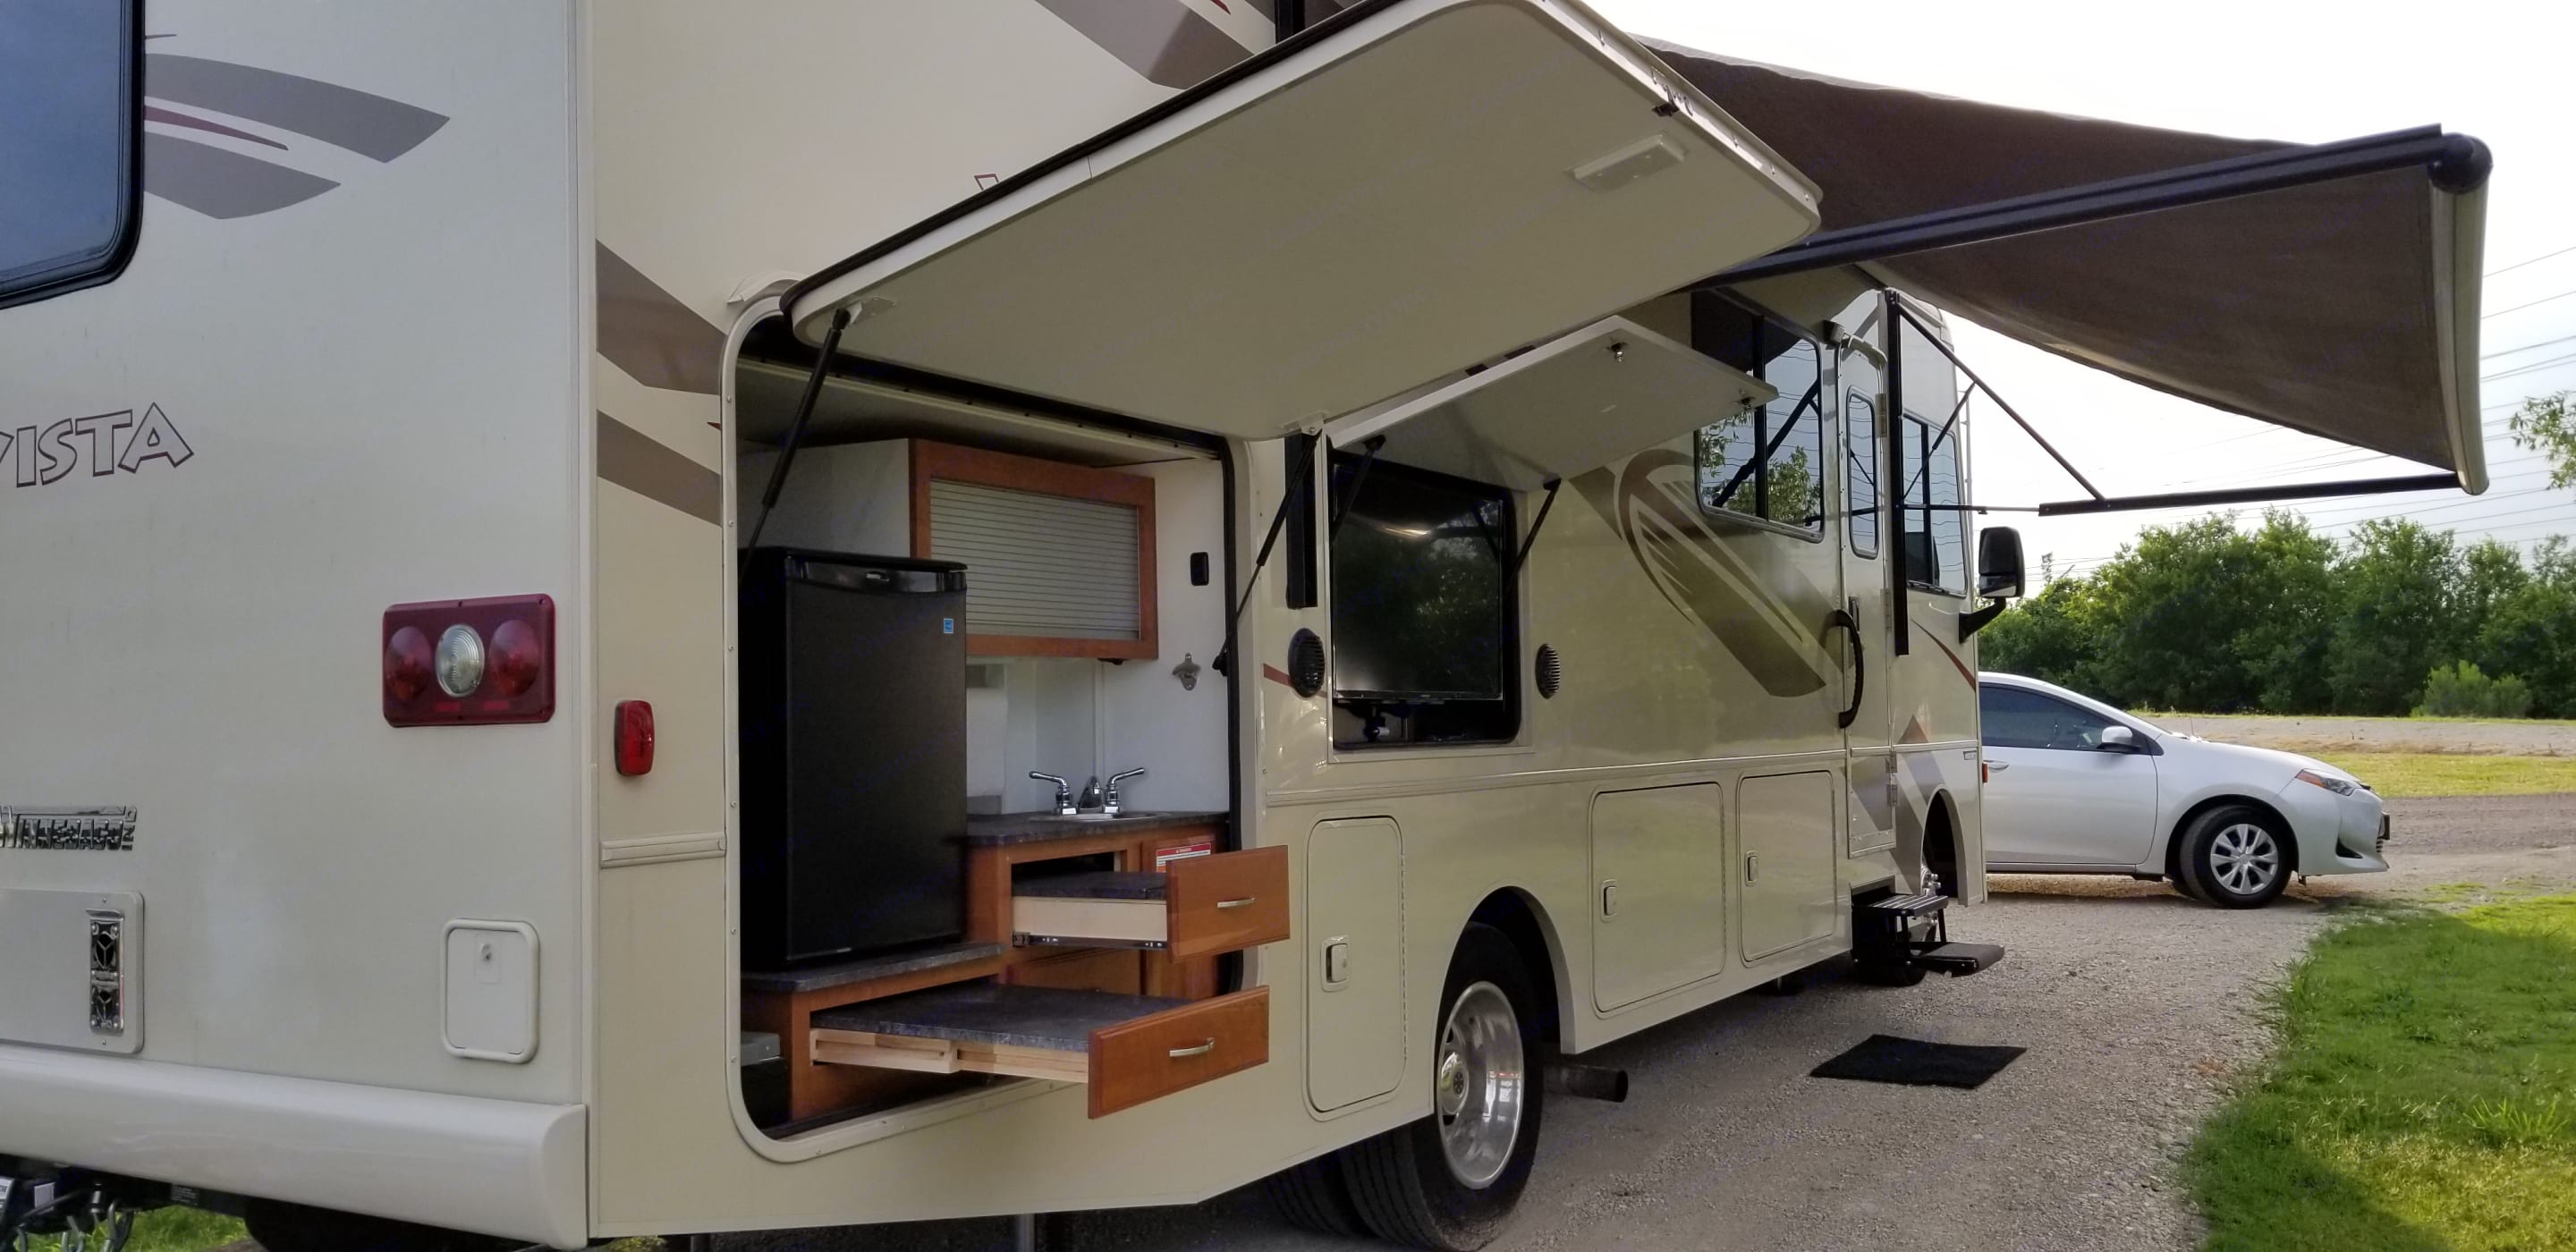 Tailgate package, includes a sink, double prep area and storage compartments. Electric refrigerator (does not cool with LP so mainly for drinks or food while on campgrounds and hooked up to electric) and a gas grill that connects to the LP gas from the RV, so no separate tank is needed.. Winnebago Vista 2017